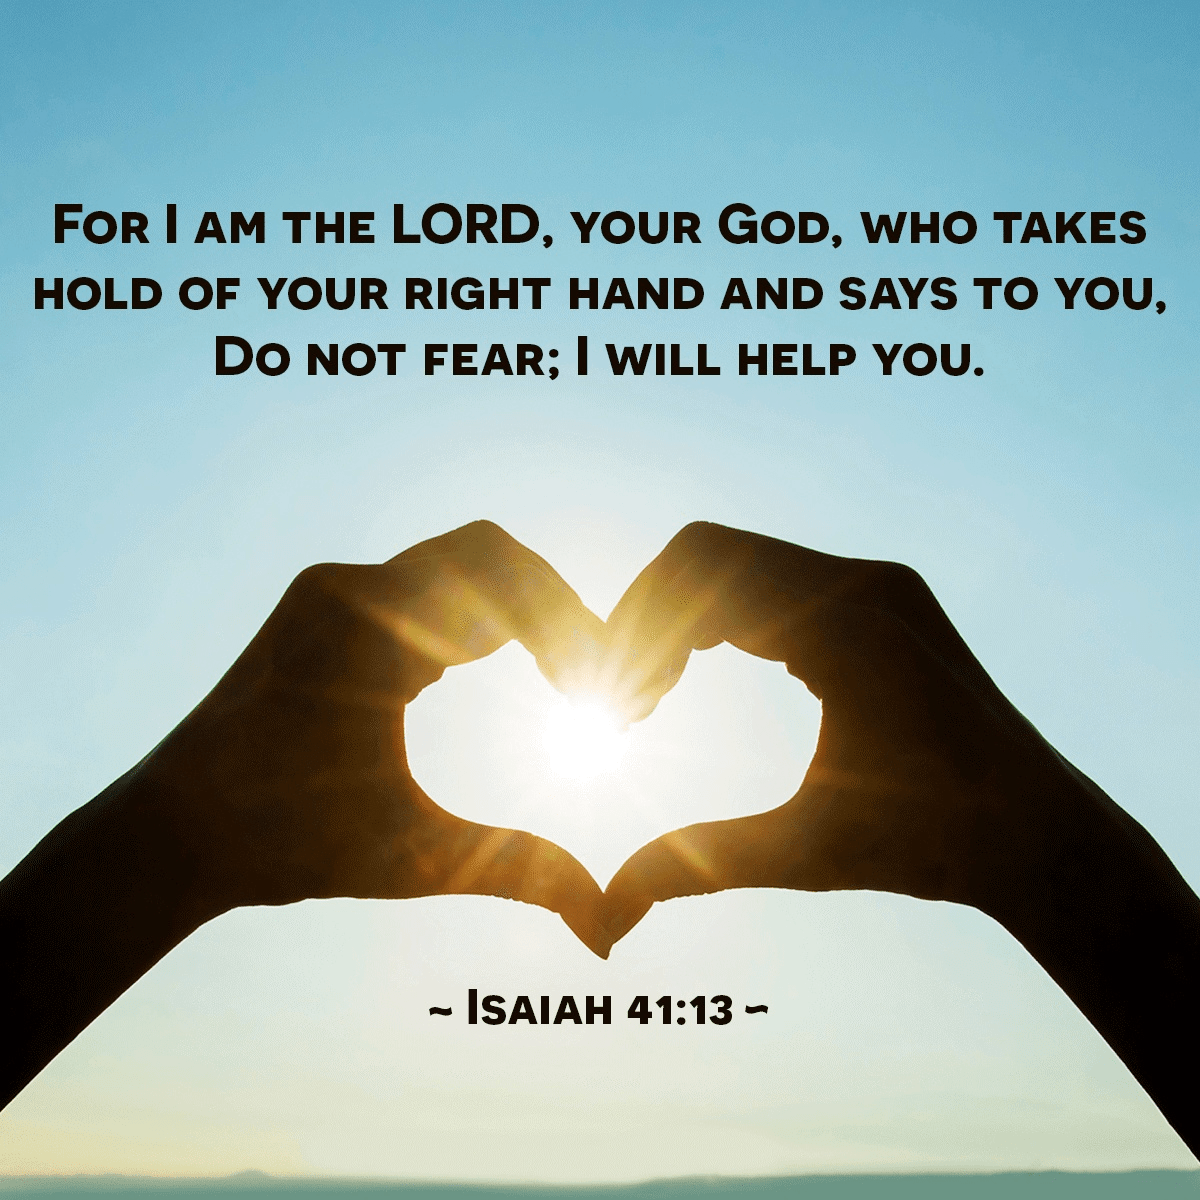 Do Not Fear; I Will Help You